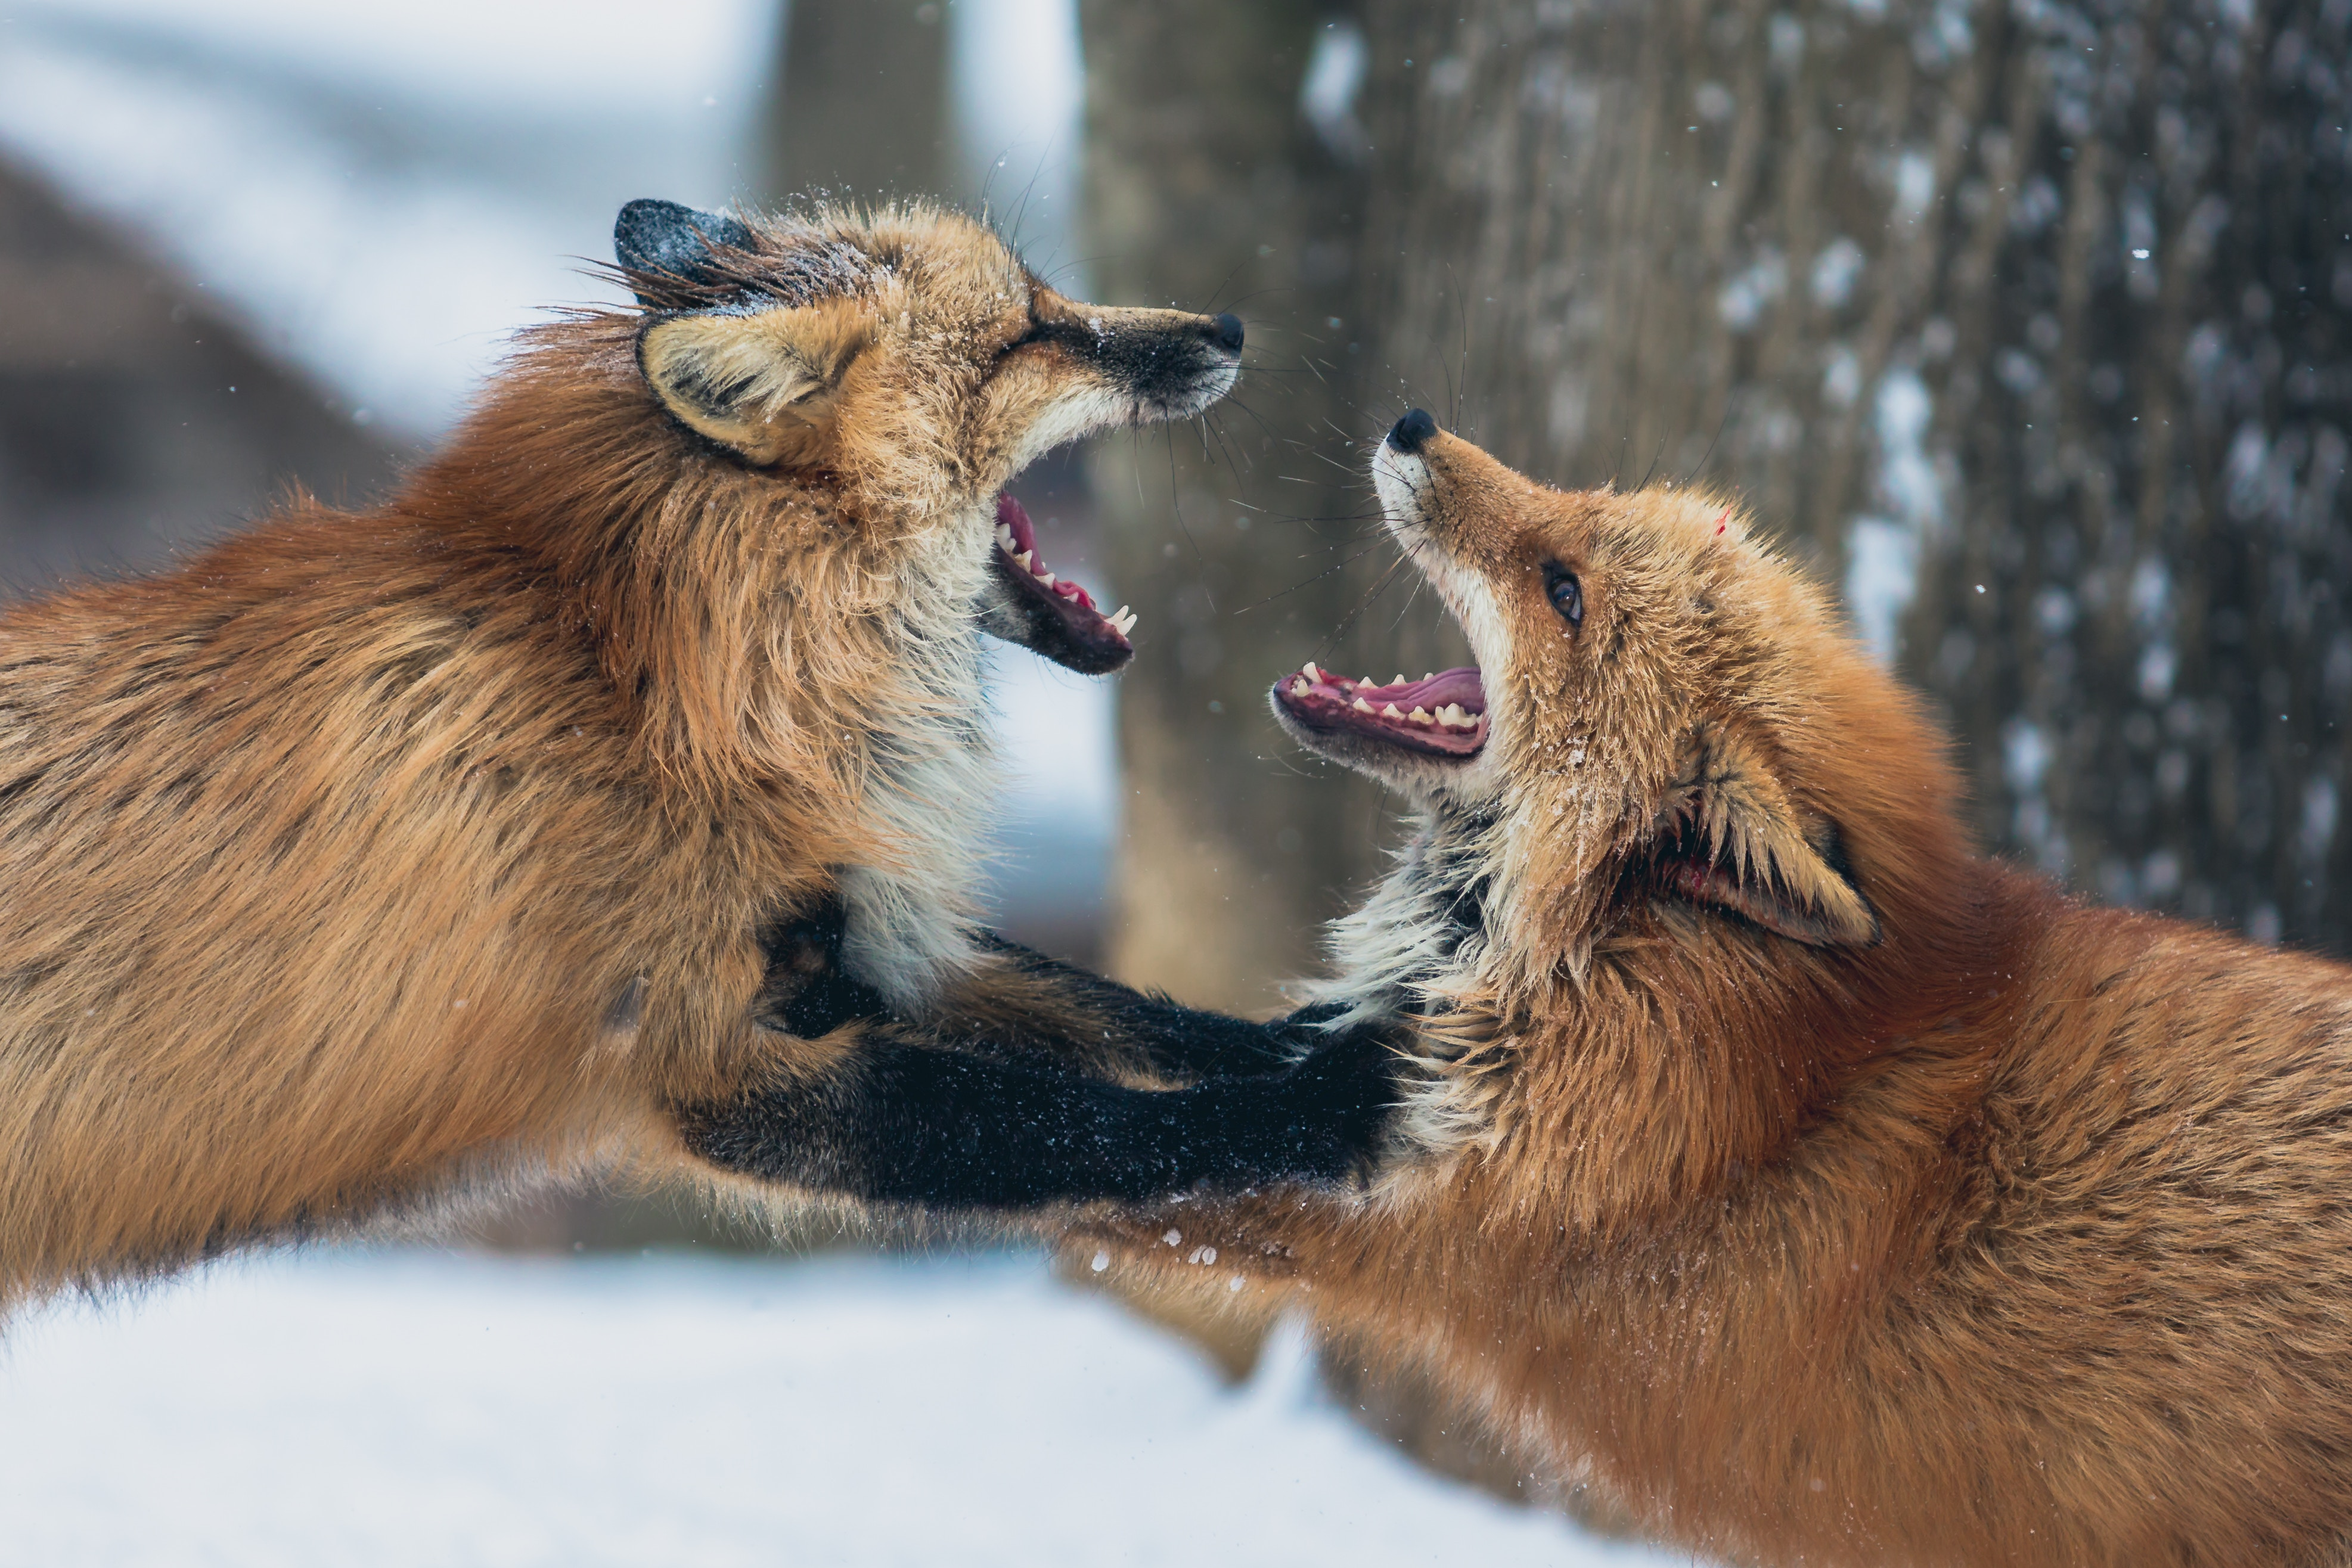 Two foxes charging at each other.